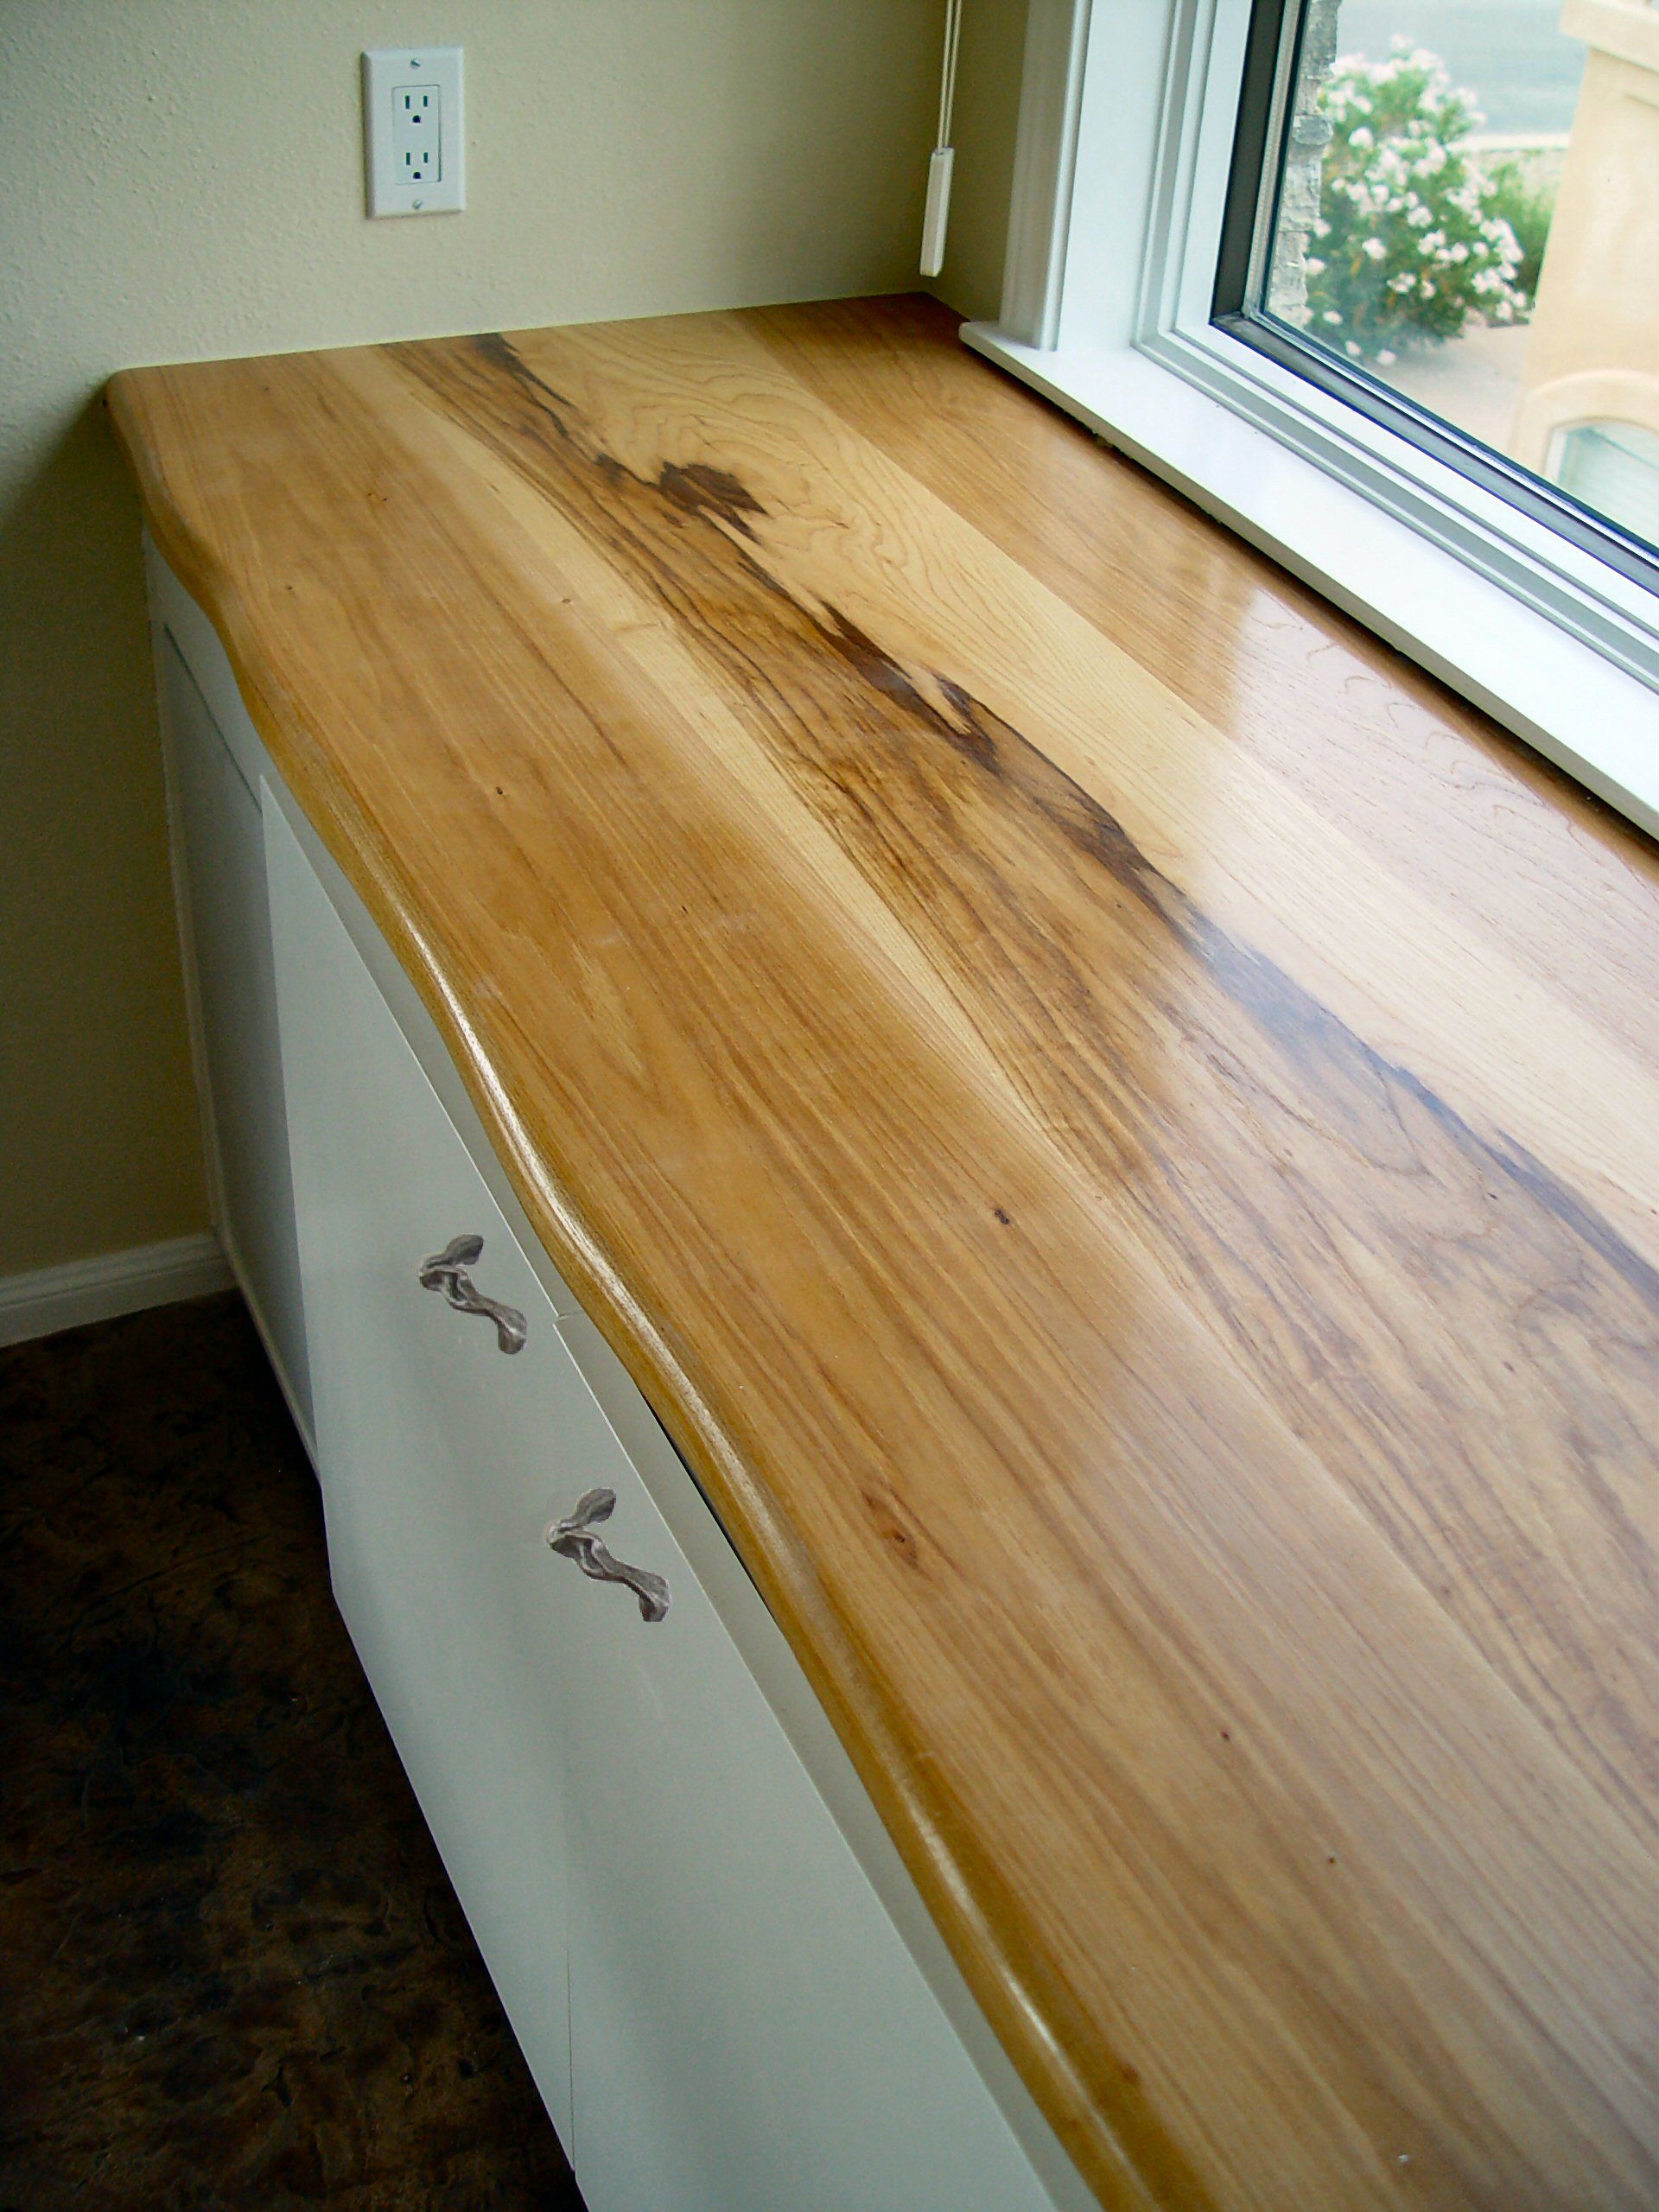 Pecan Wood Countertop Photo Gallery, By Devos Custom. Up Flush System Basement. Bedroom Basement Ideas. Laminate Basement. Decorating An Unfinished Basement. Finishing My Basement. Basement Wet Bar Cabinets. Basement Remodel Cost Per Square Foot. Waterproofing Basement Paint